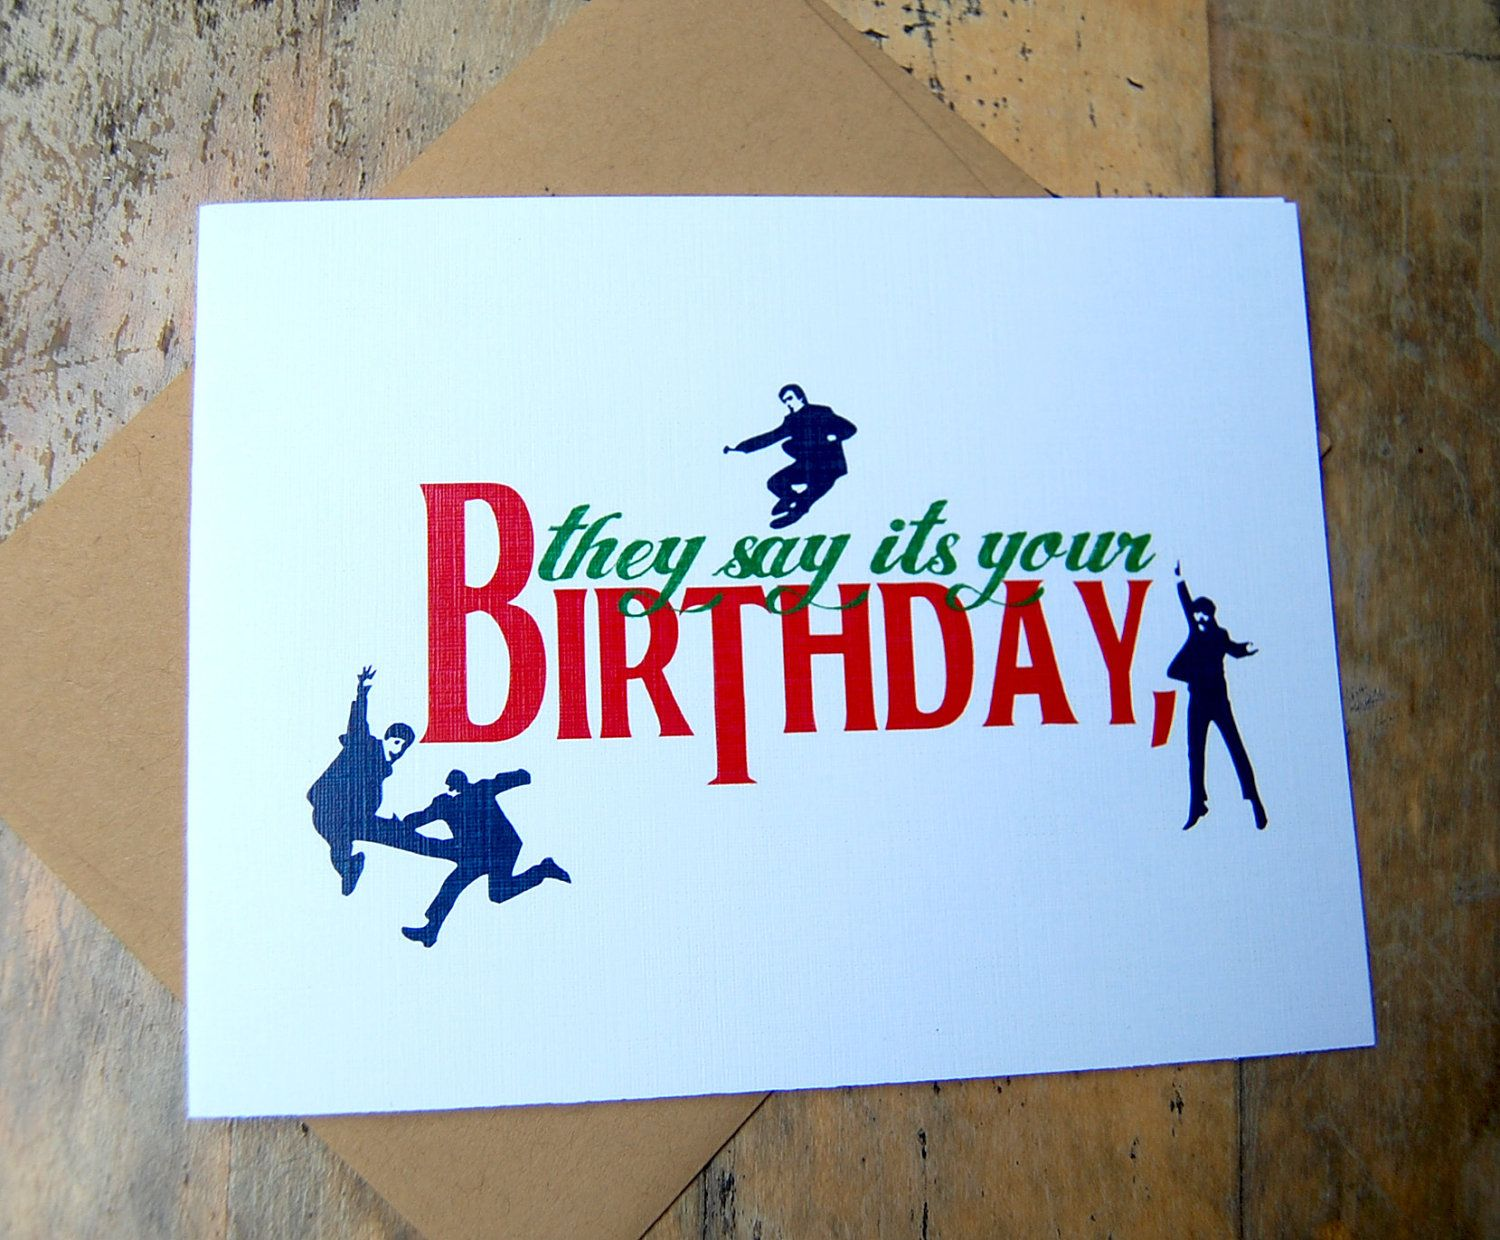 Beatles Birthday Card They Say It S Your Birthday Beatles Lovers Birthday Card 3 00 Via Etsy Beatles Birthday Birthday Cards Beatles Party